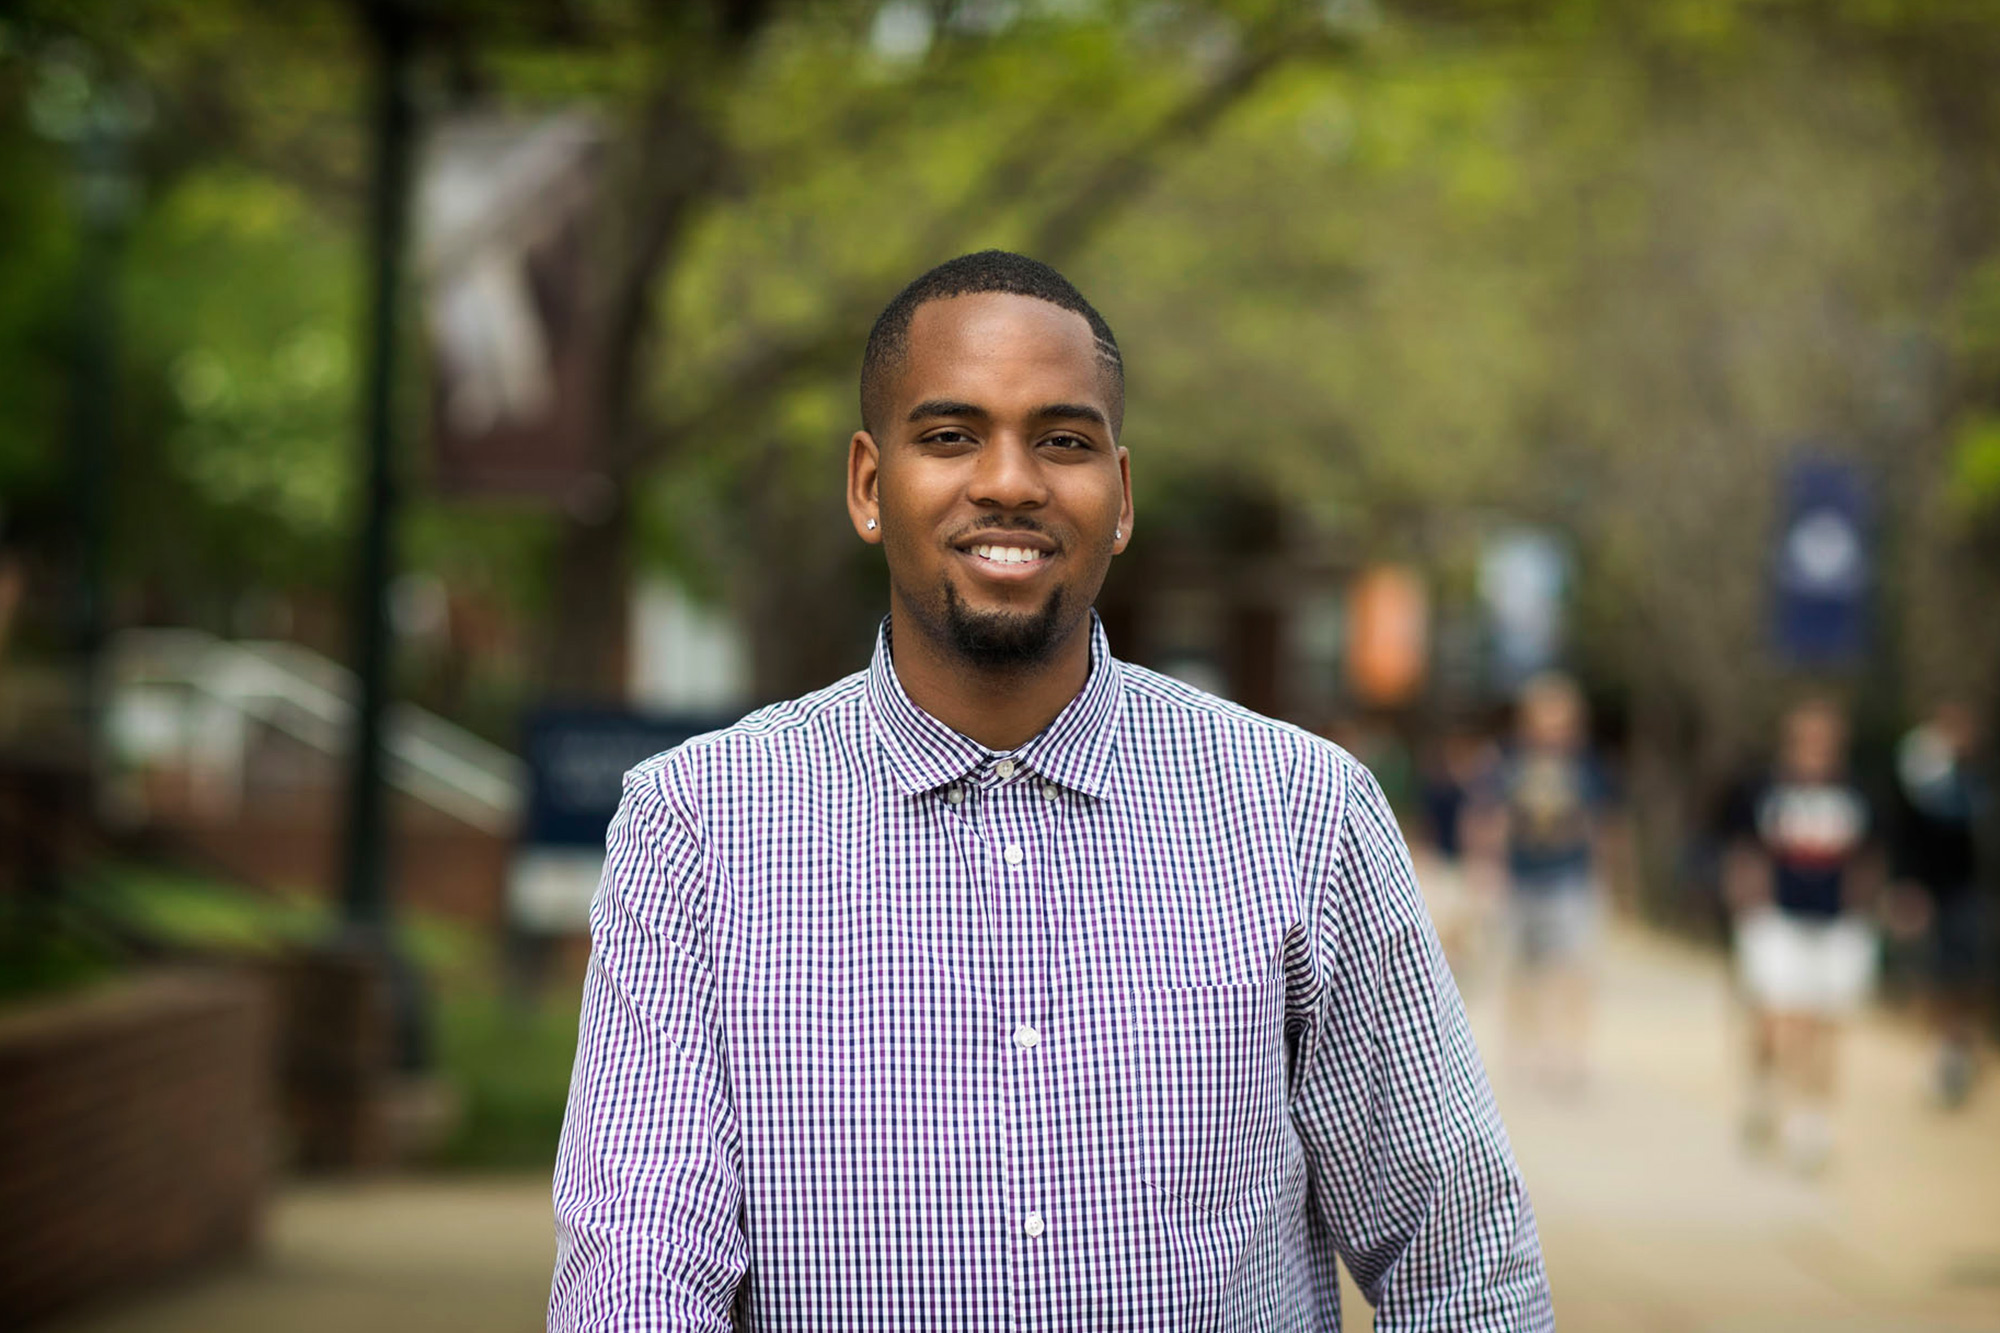 An early affinity for math and science evolved into a focus on engineering for Darius Carter, who is working to inspire more African-Americans to follow in his footsteps.